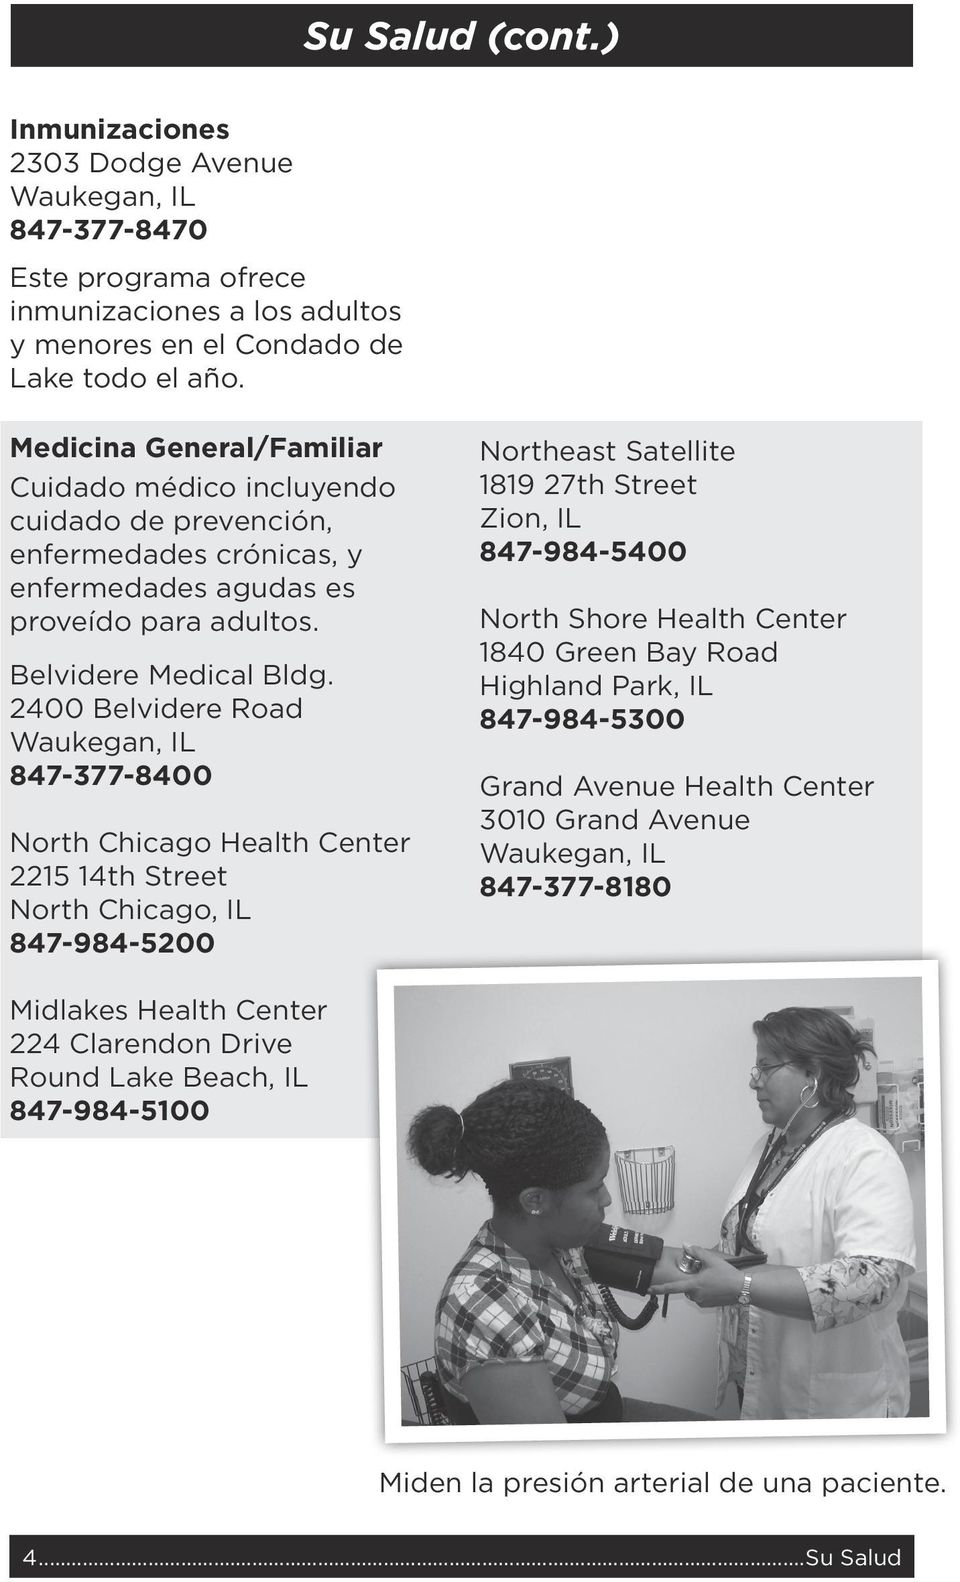 2400 Belvidere Road 847-377-8400 North Chicago Health Center 2215 14th Street North Chicago, IL 847-984-5200 Northeast Satellite 1819 27th Street Zion, IL 847-984-5400 North Shore Health